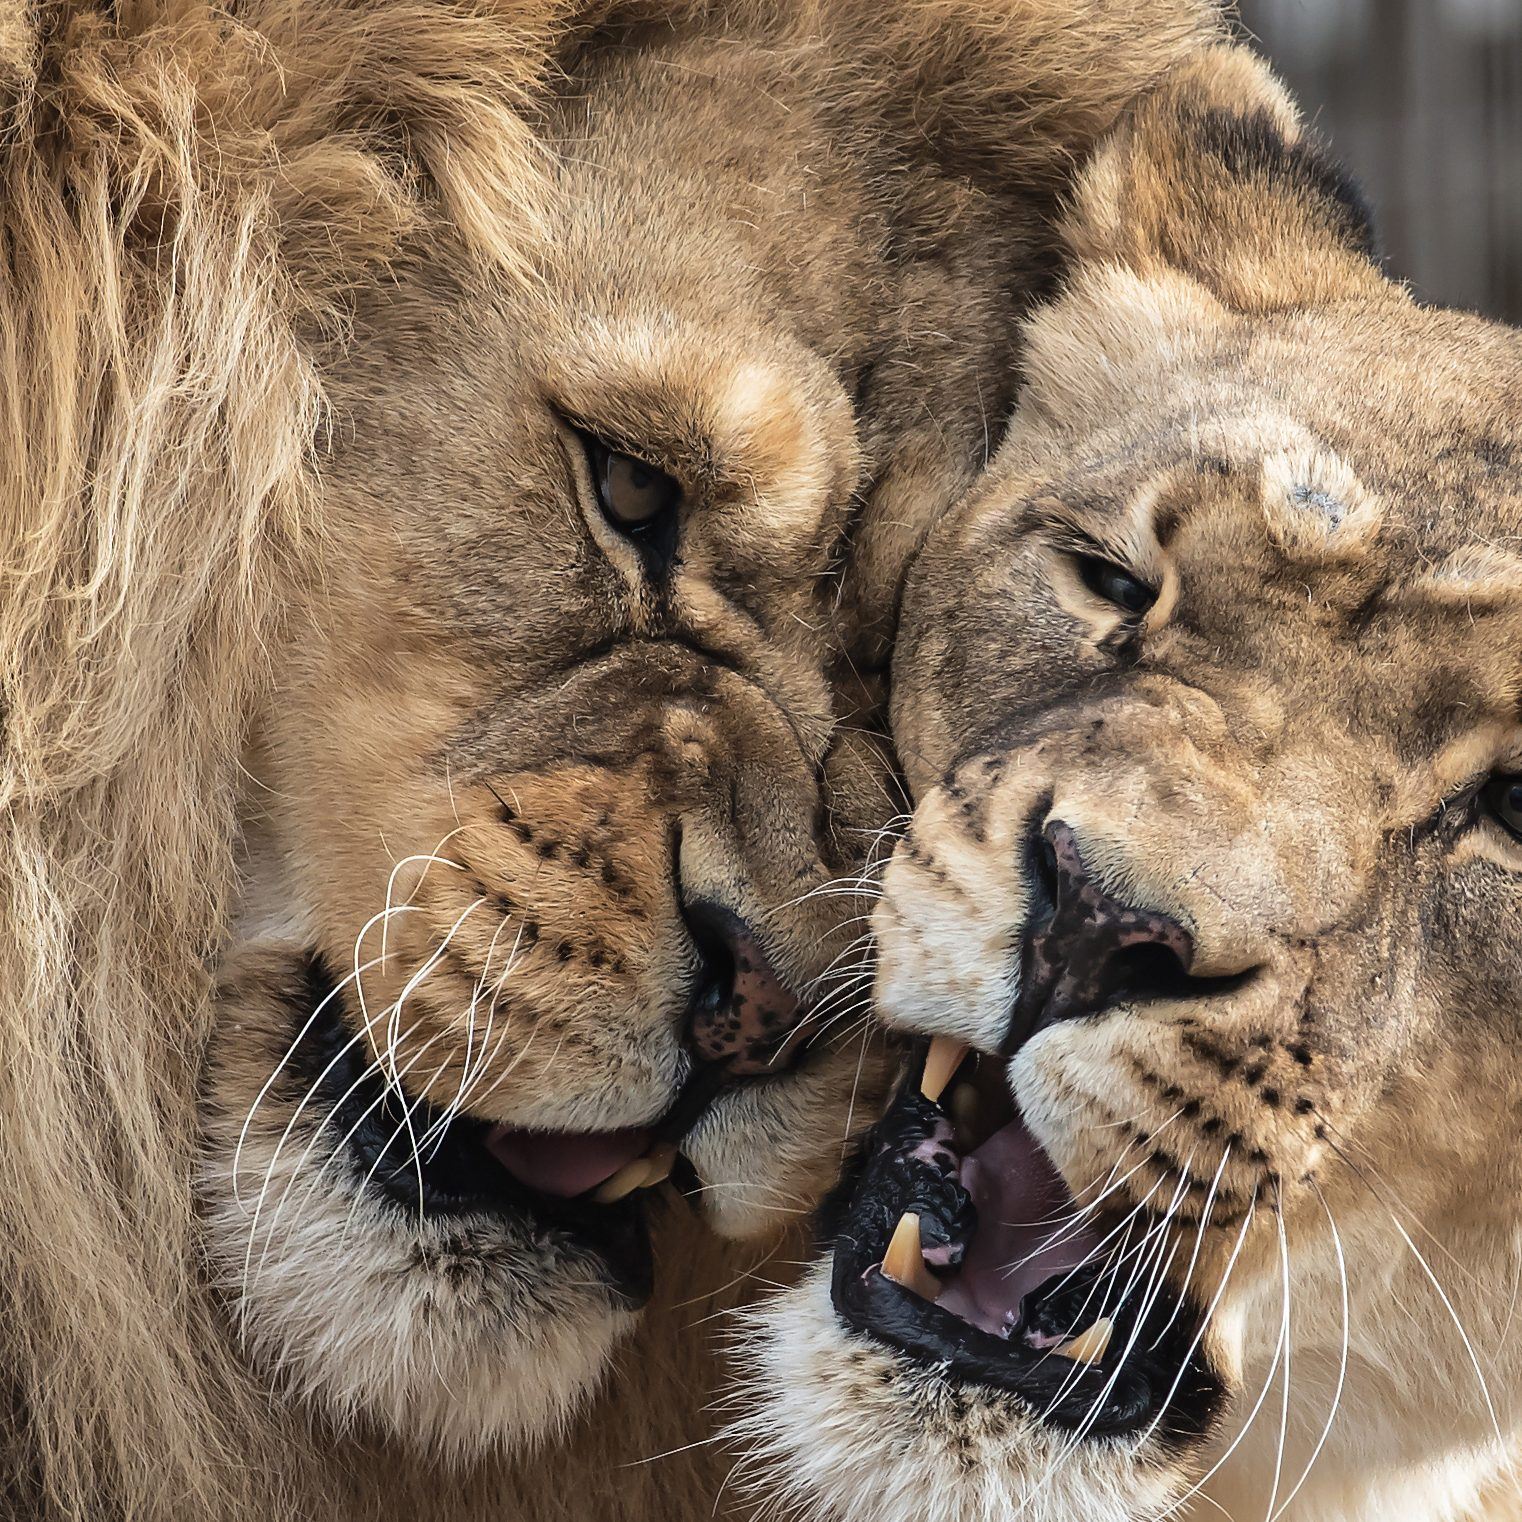 PHOTO #3 LION LOVE CATEGORY ANIMAL GROUP